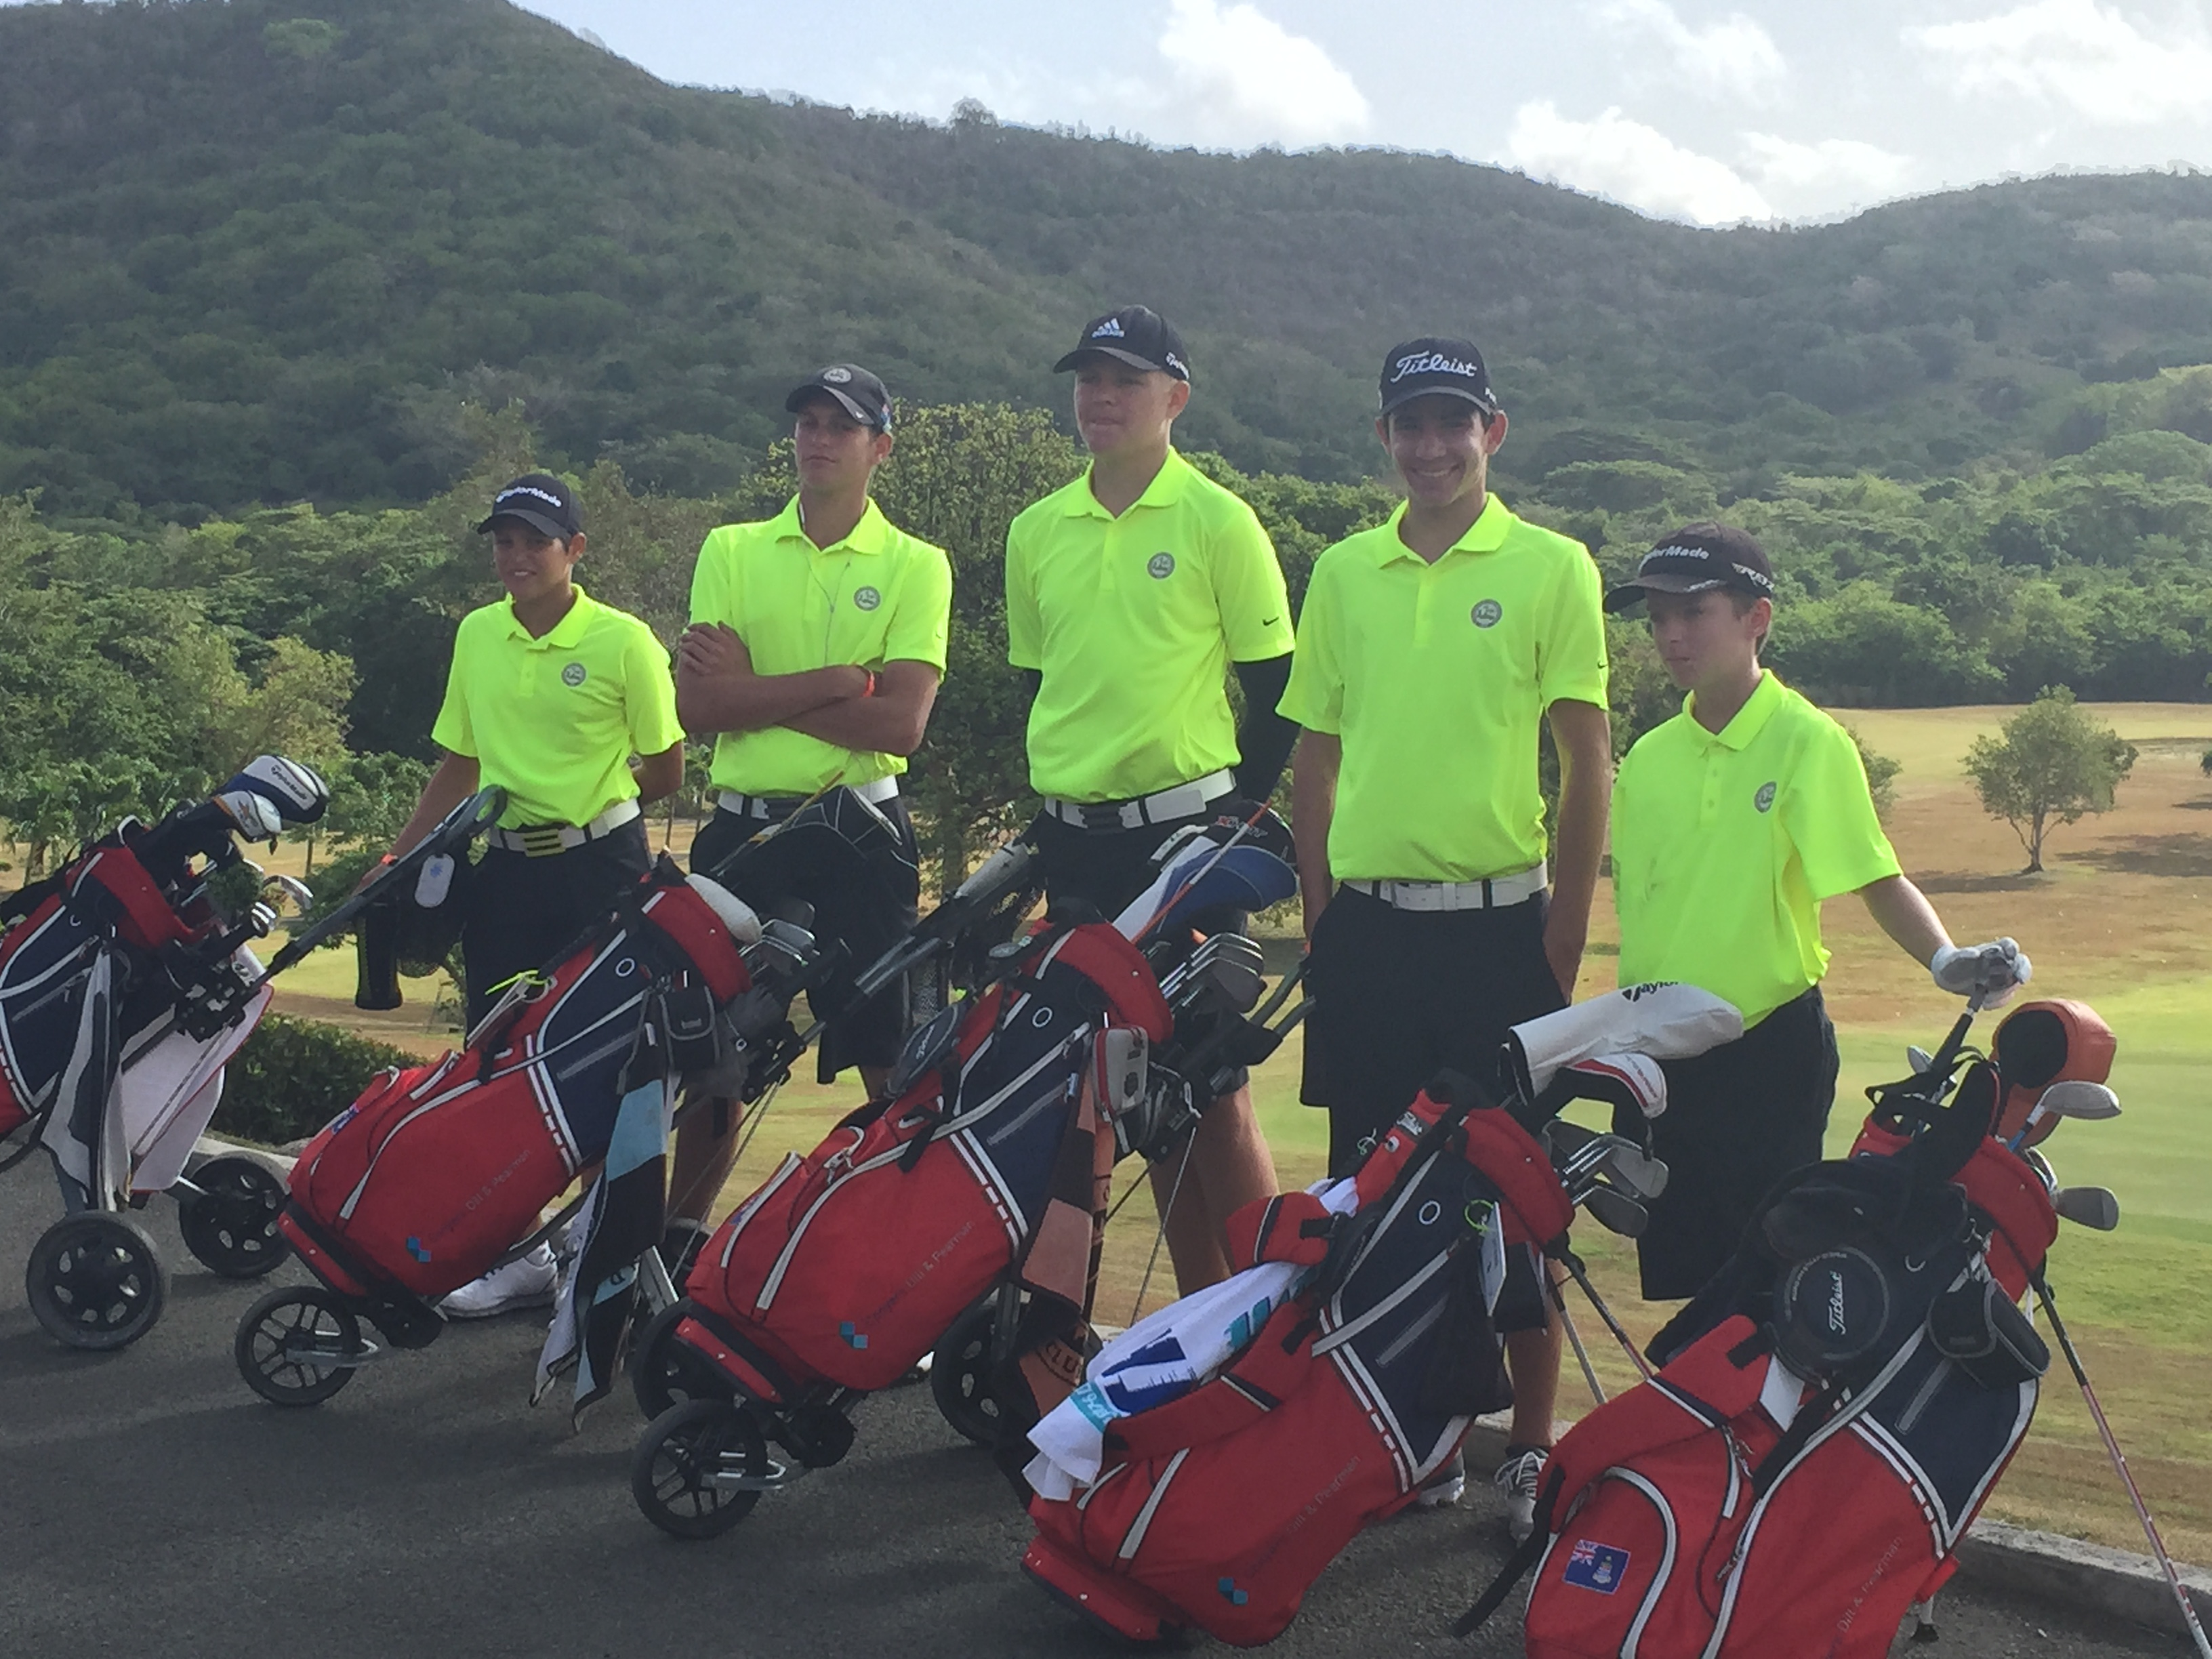 2015 Junior Team - St. Croix